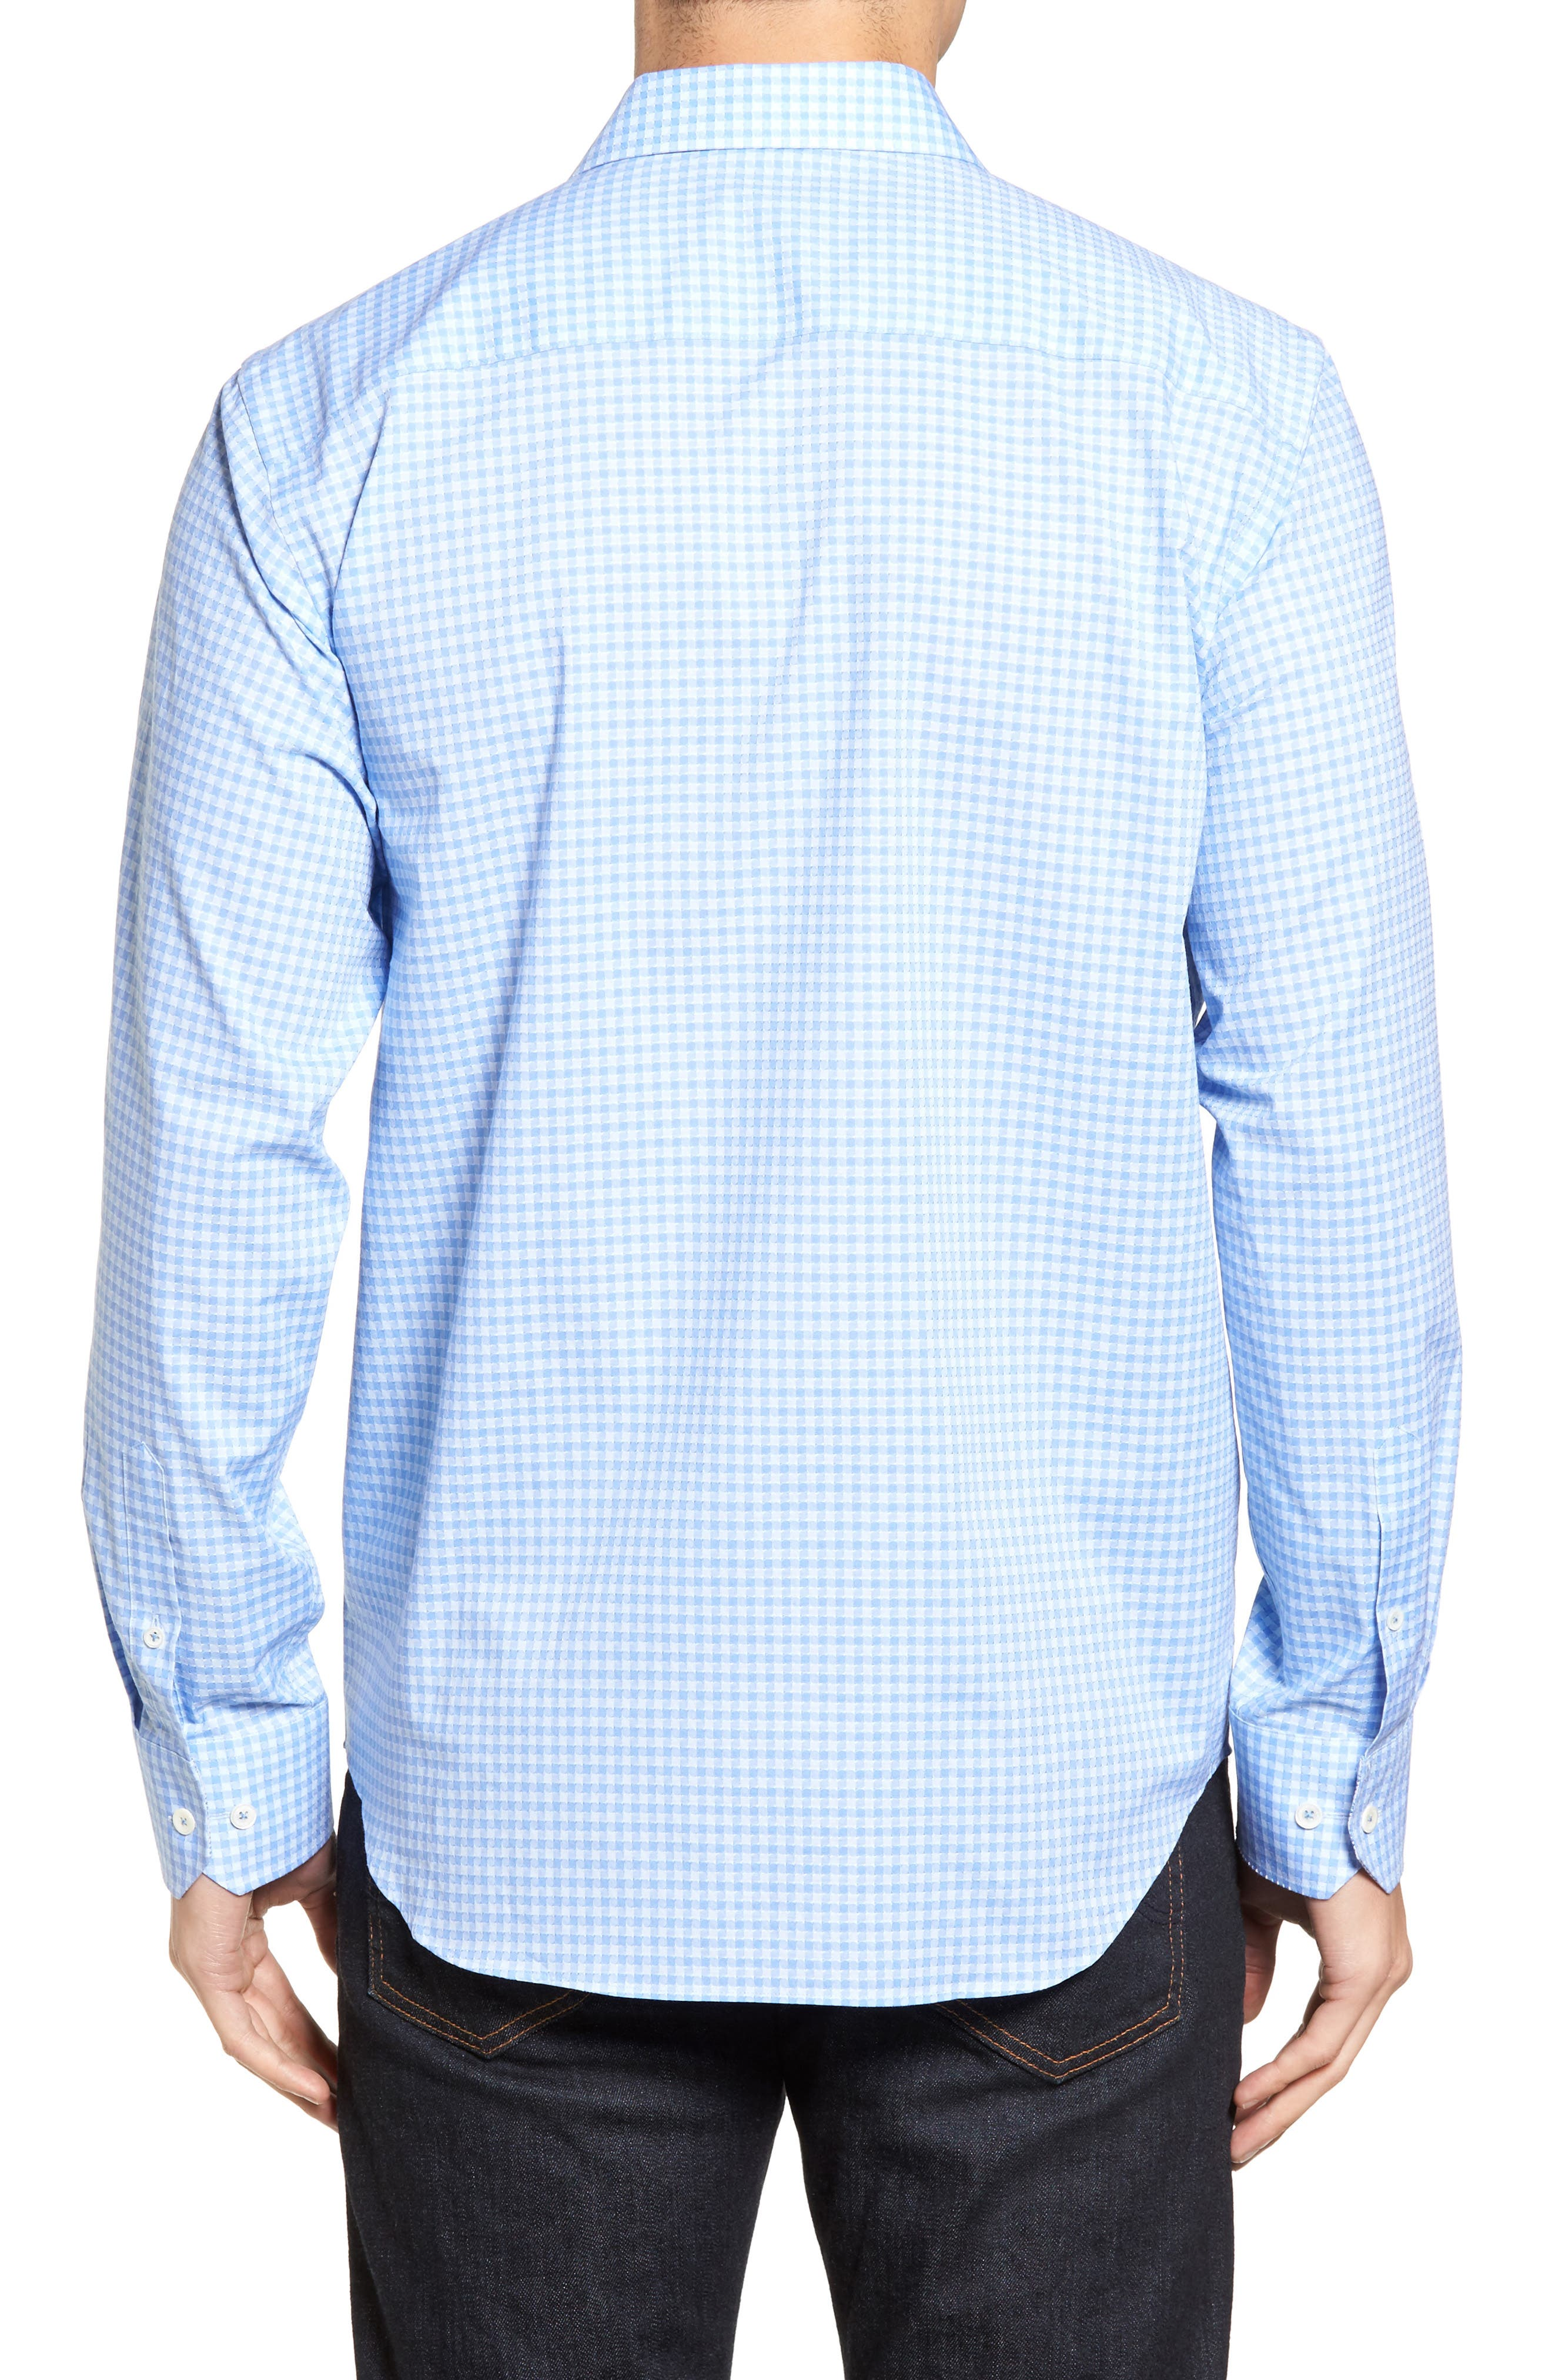 Classic Fit Circle Check Sport Shirt,                             Alternate thumbnail 2, color,                             Air Blue